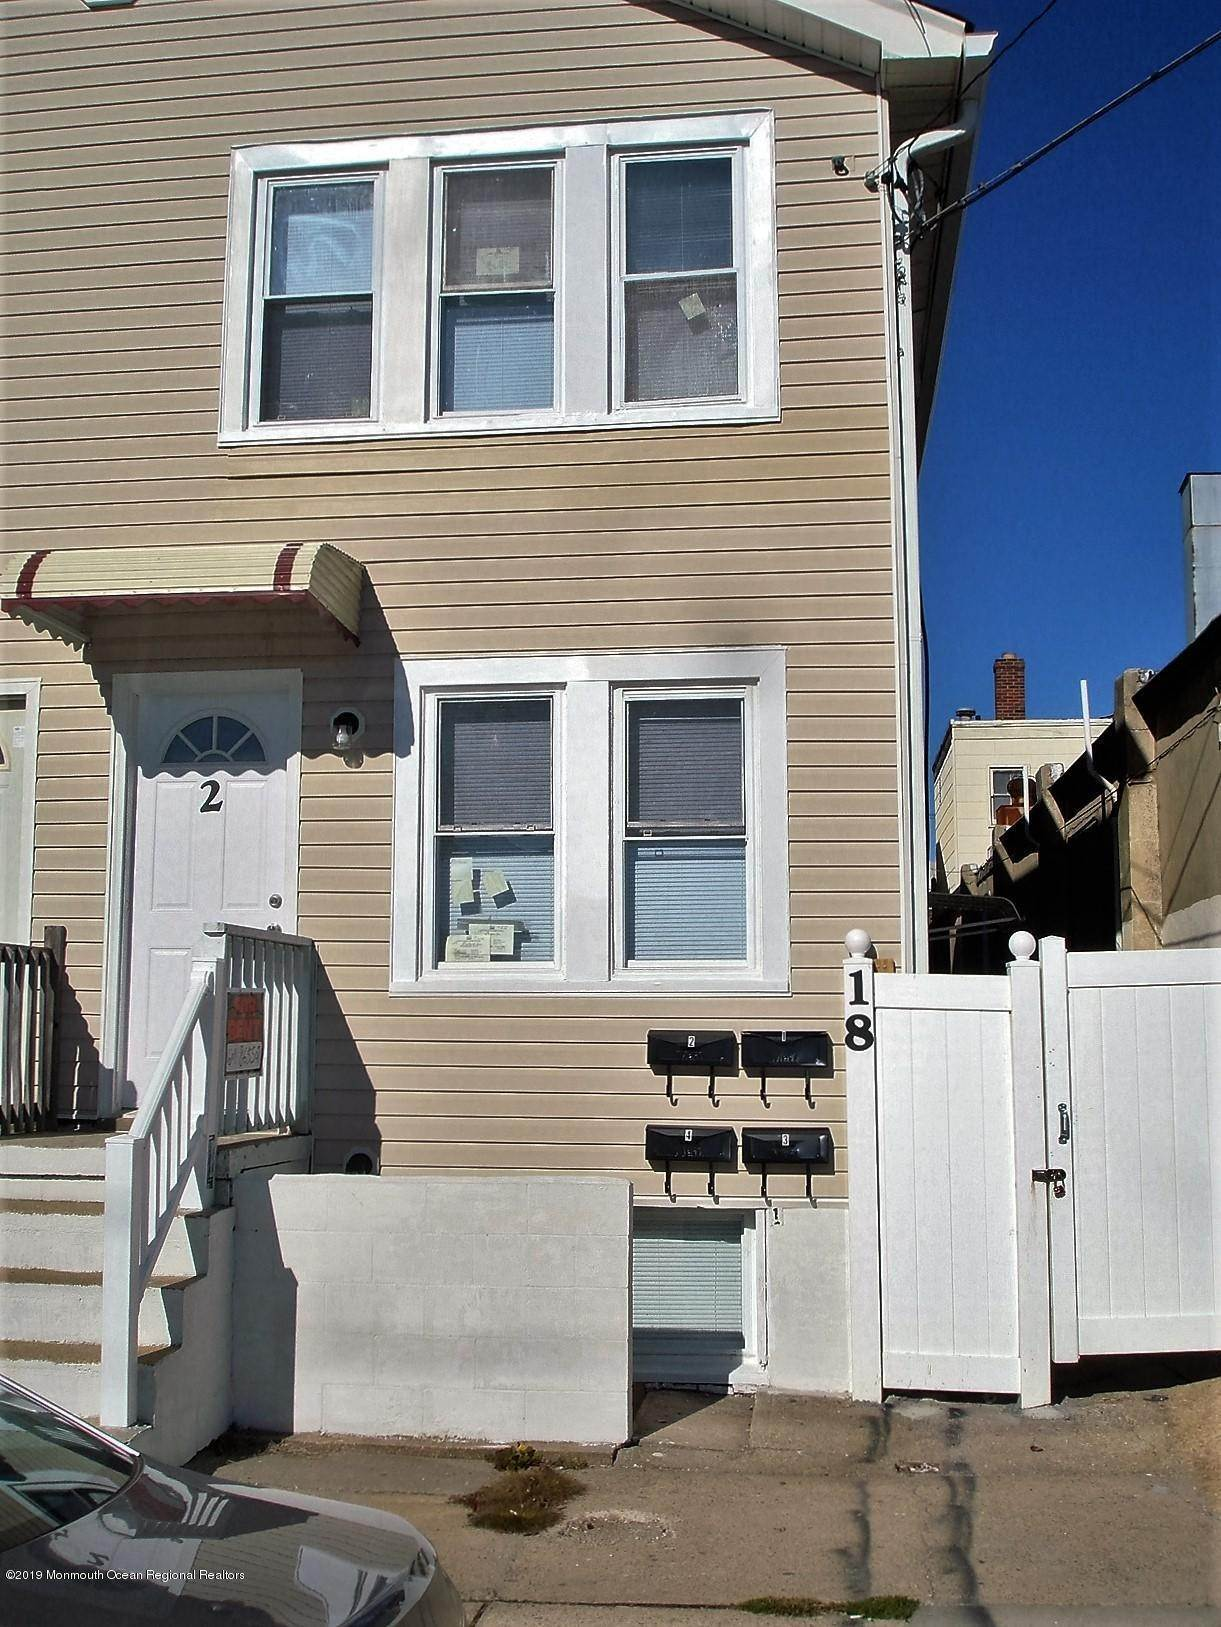 Multi-Family Homes for Sale at 18 Dupont Avenue Seaside Heights, New Jersey 08751 United States